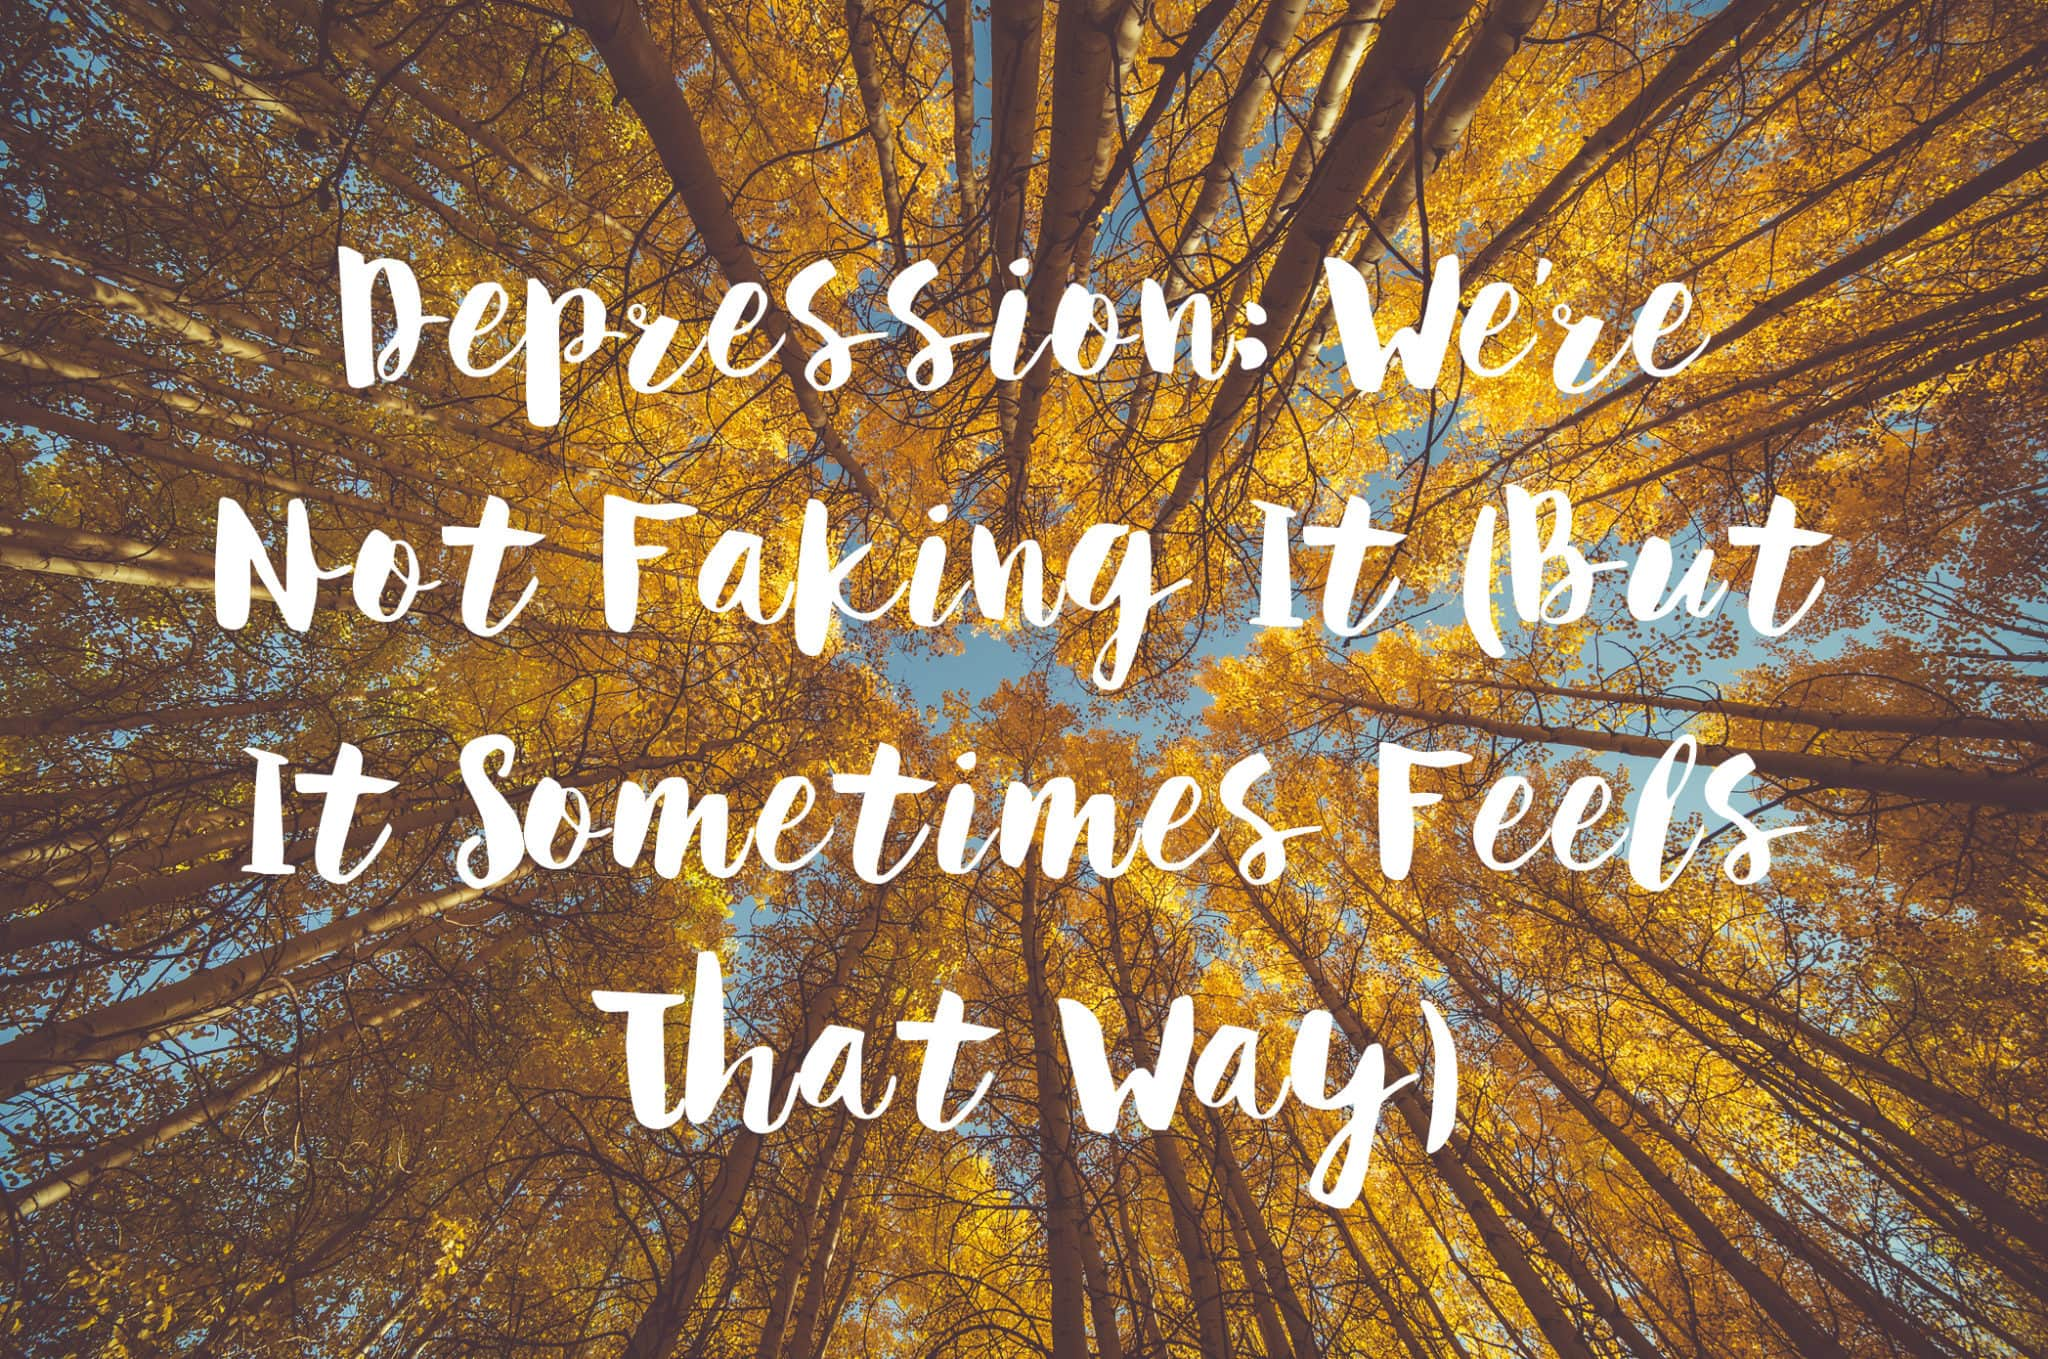 Depression: We're Not Faking It (But It Sometimes Feels That Way)